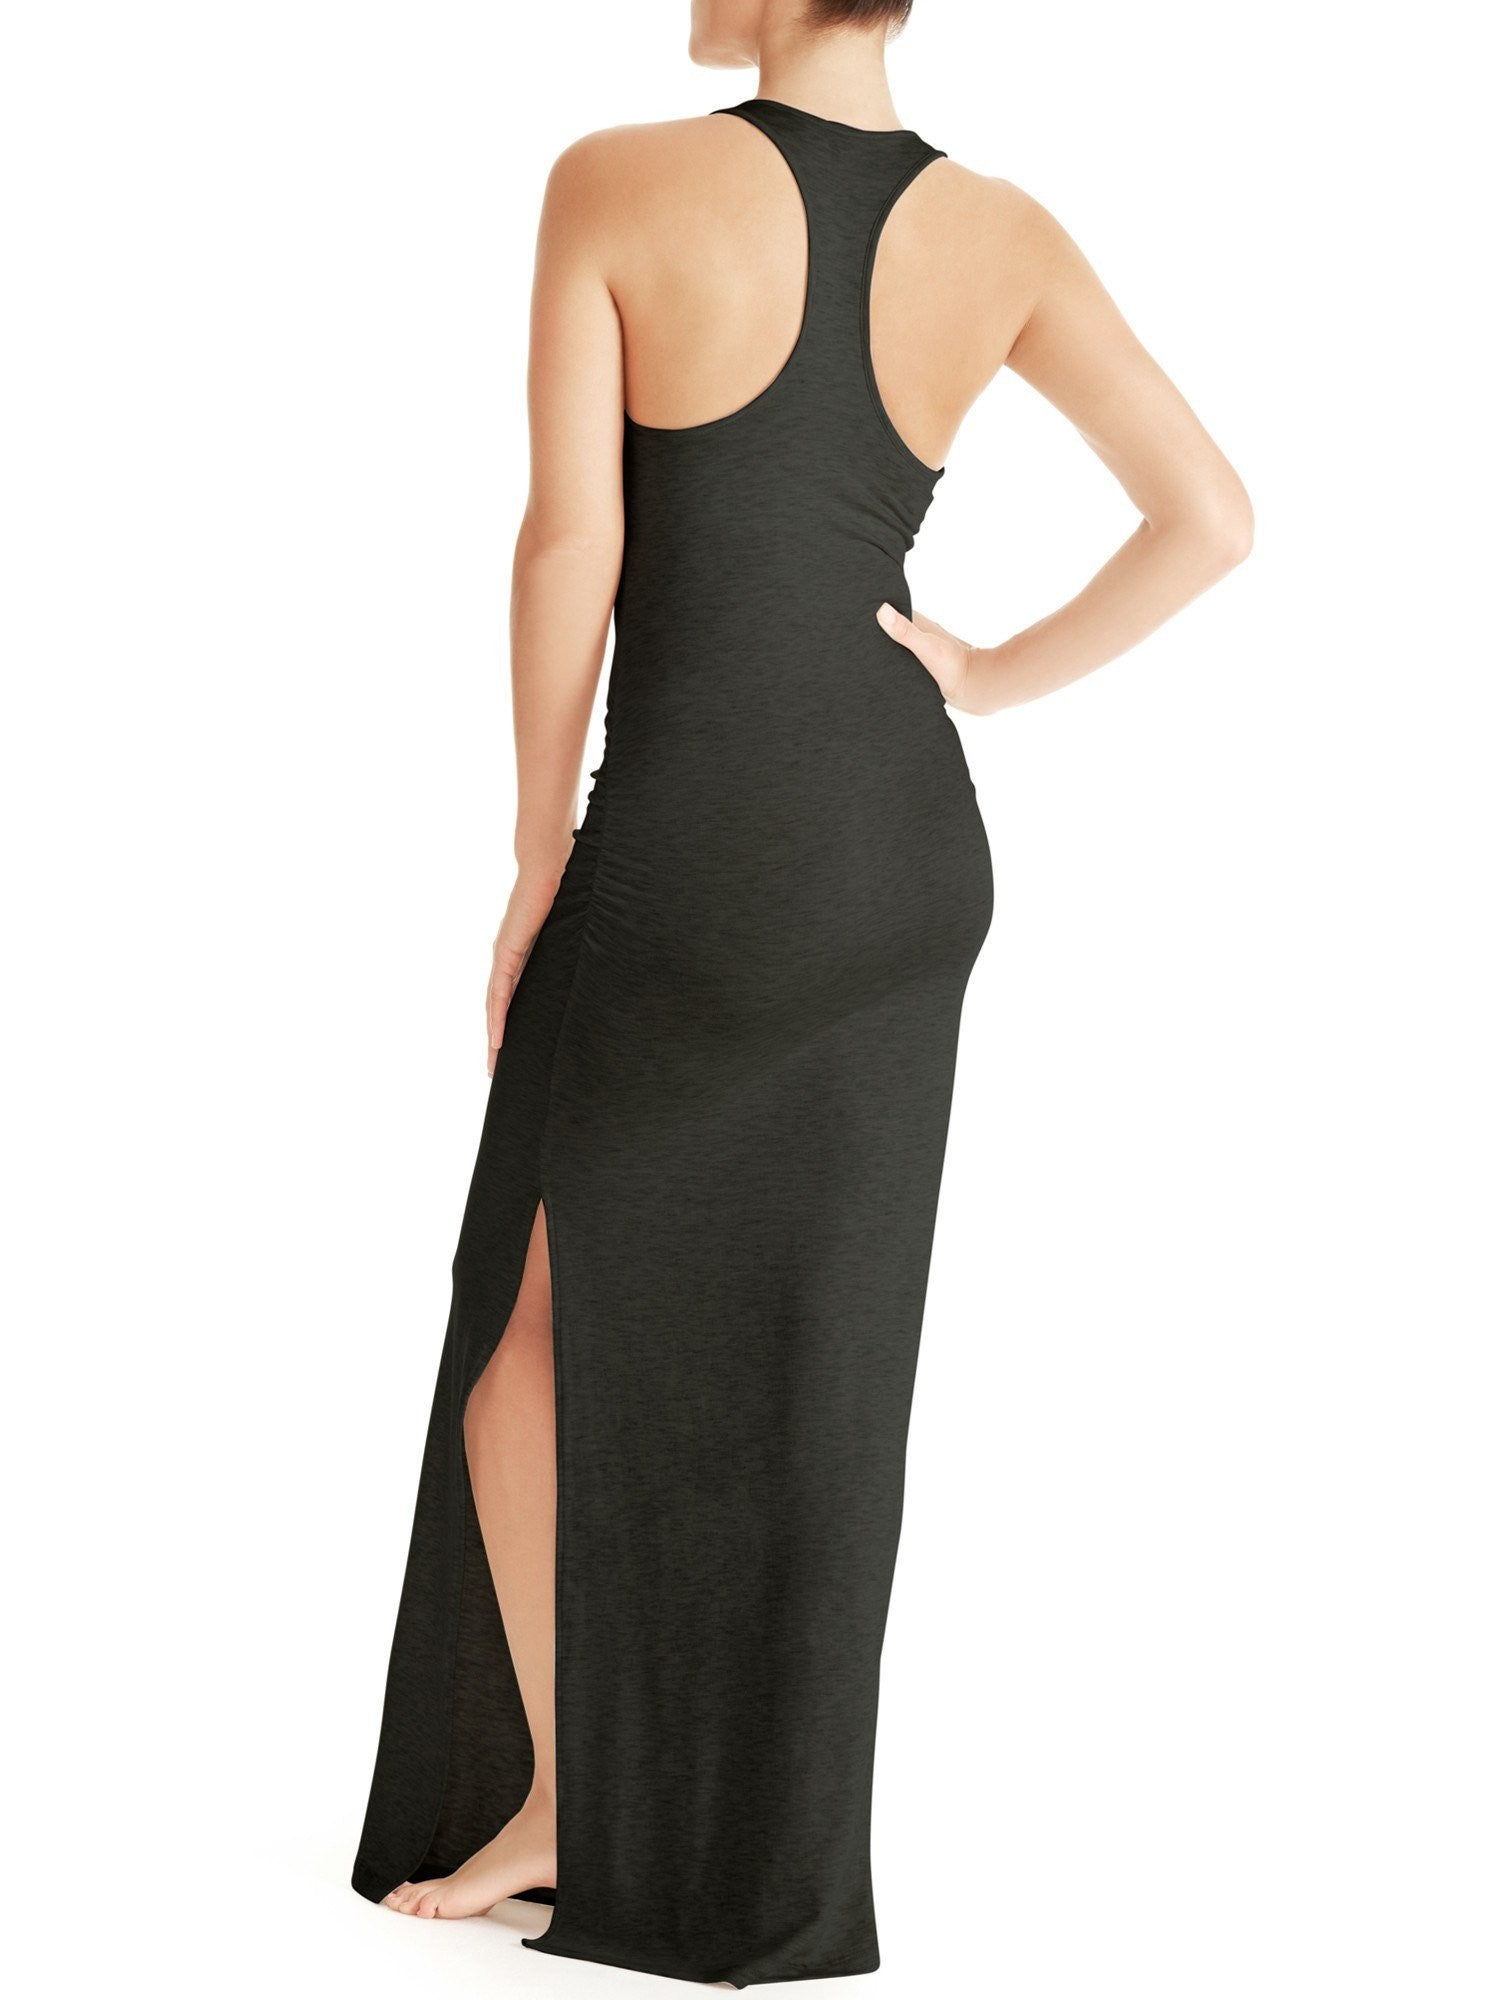 Ava Racer Back Maxi Dresses by Naked Princess